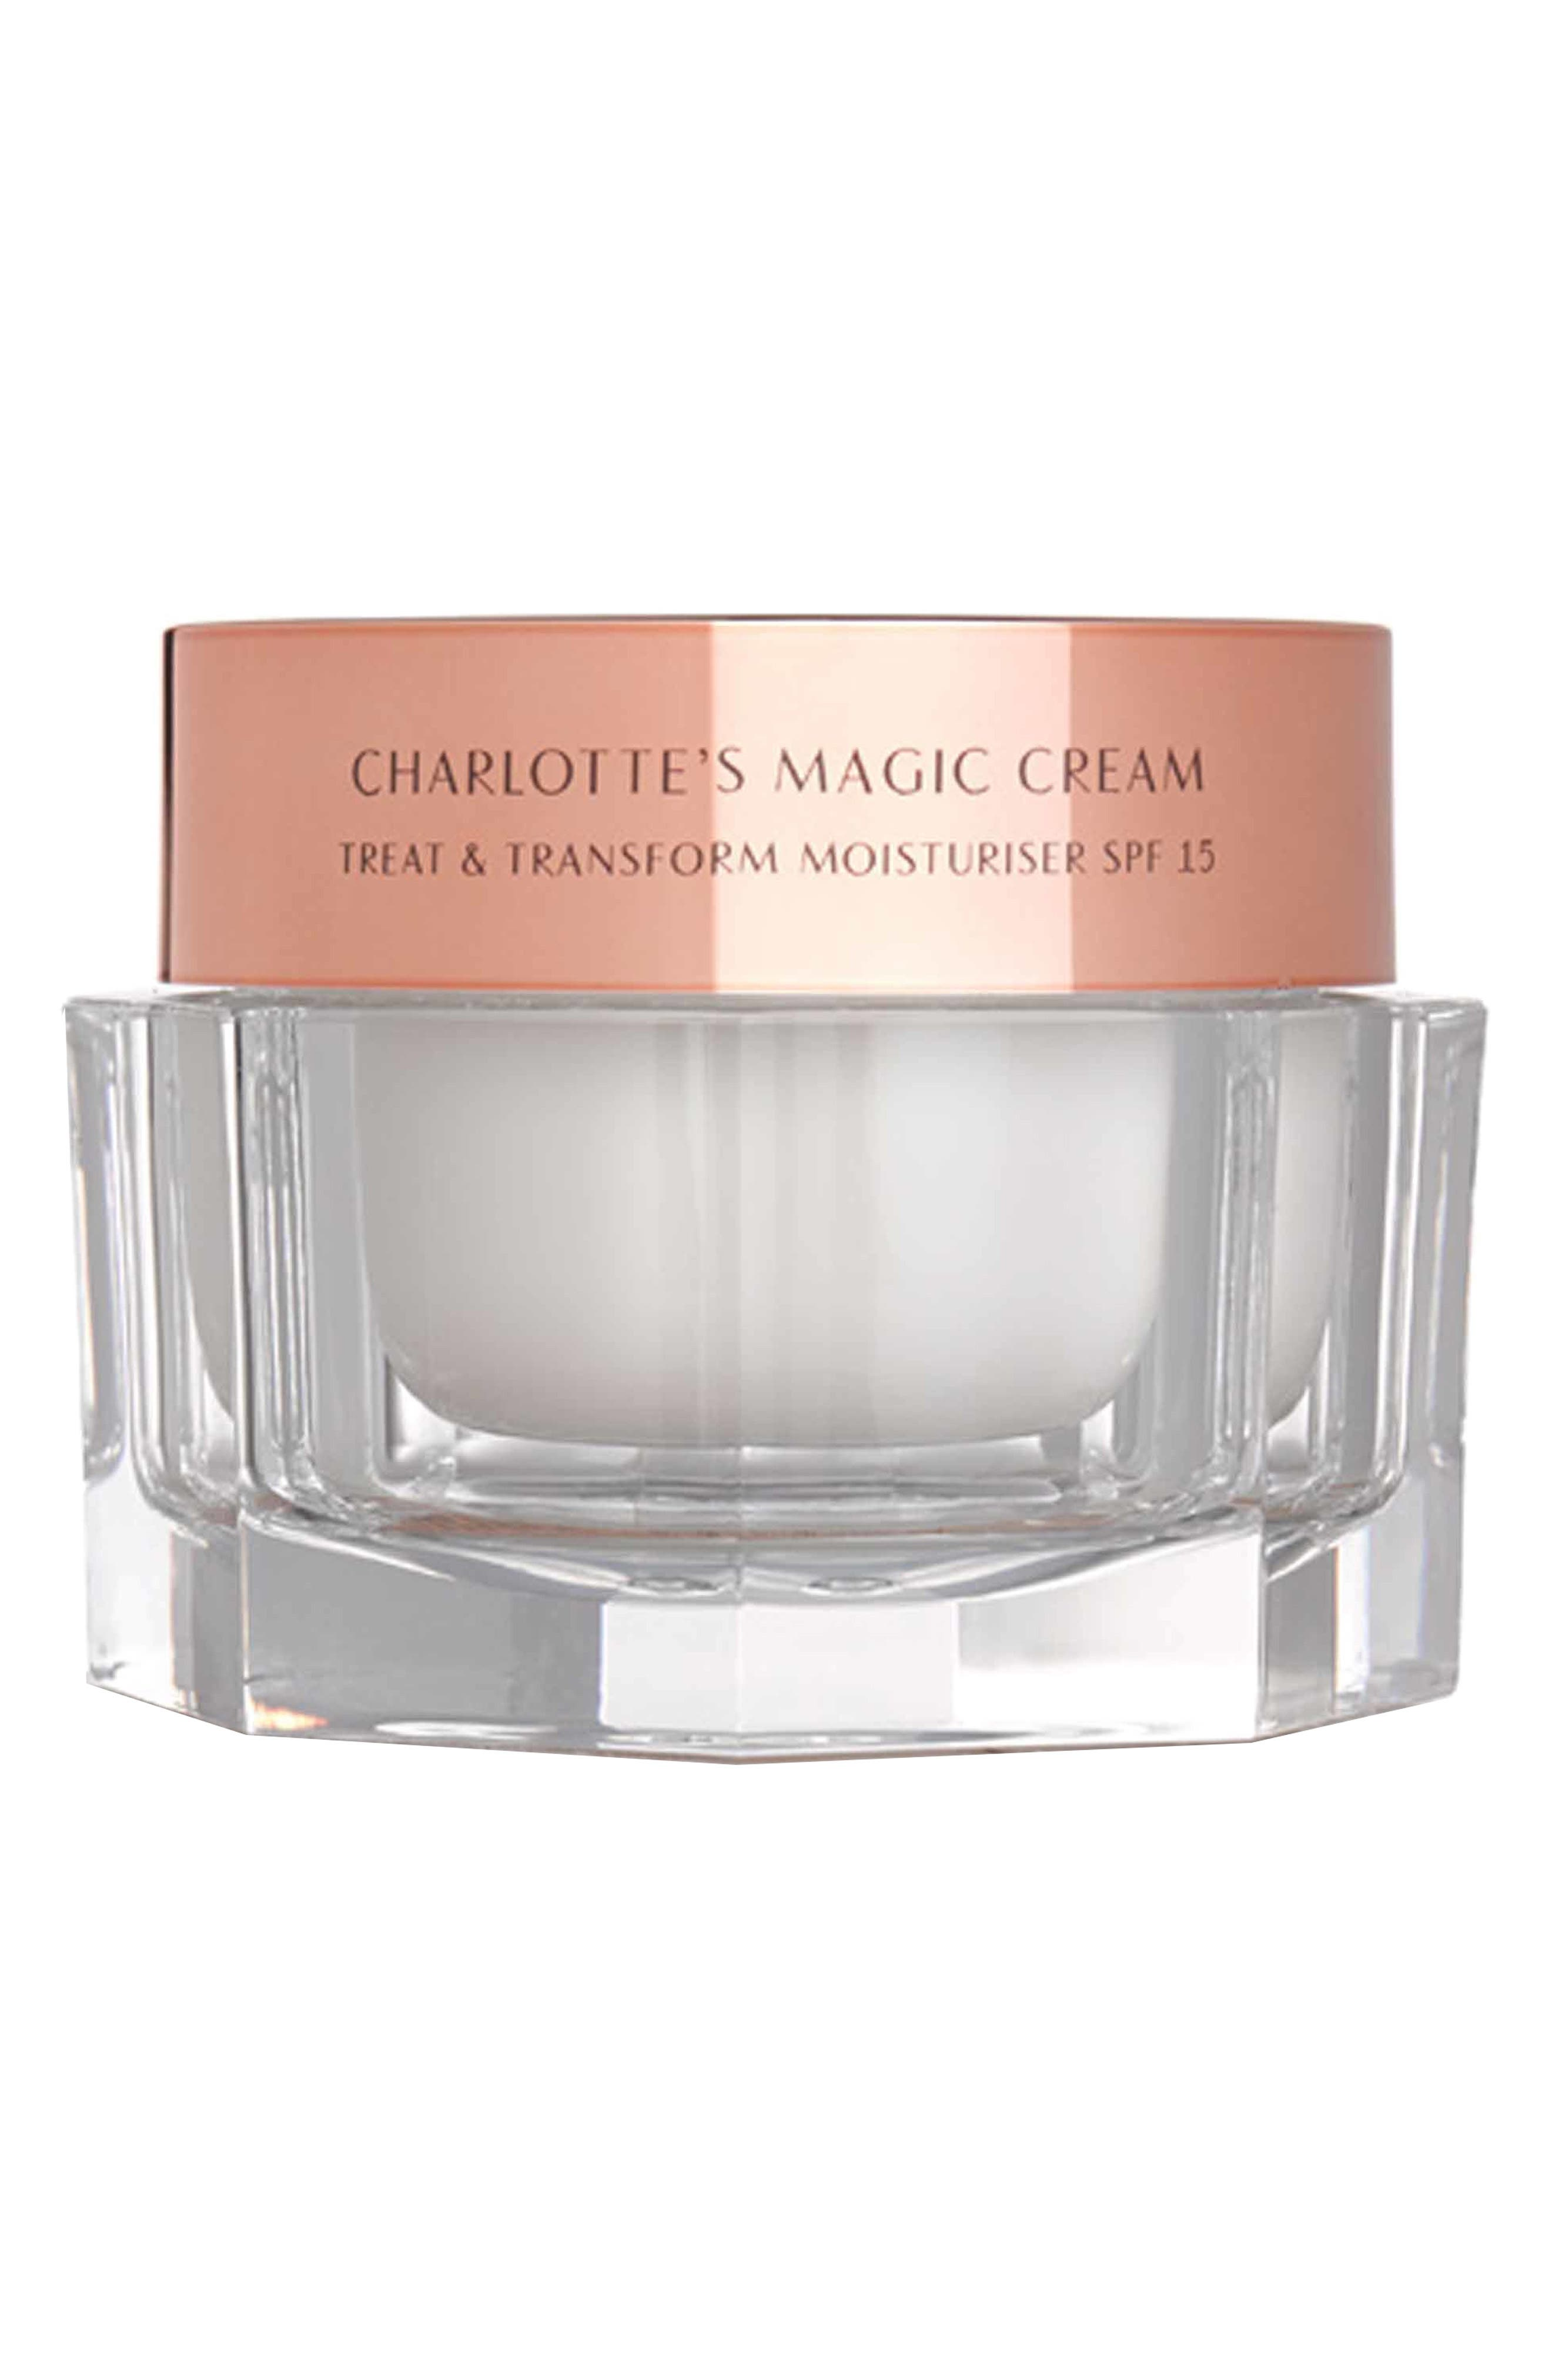 CHARLOTTE TILBURY,                             Charlottes Magic Cream,                             Main thumbnail 1, color,                             NO COLOR